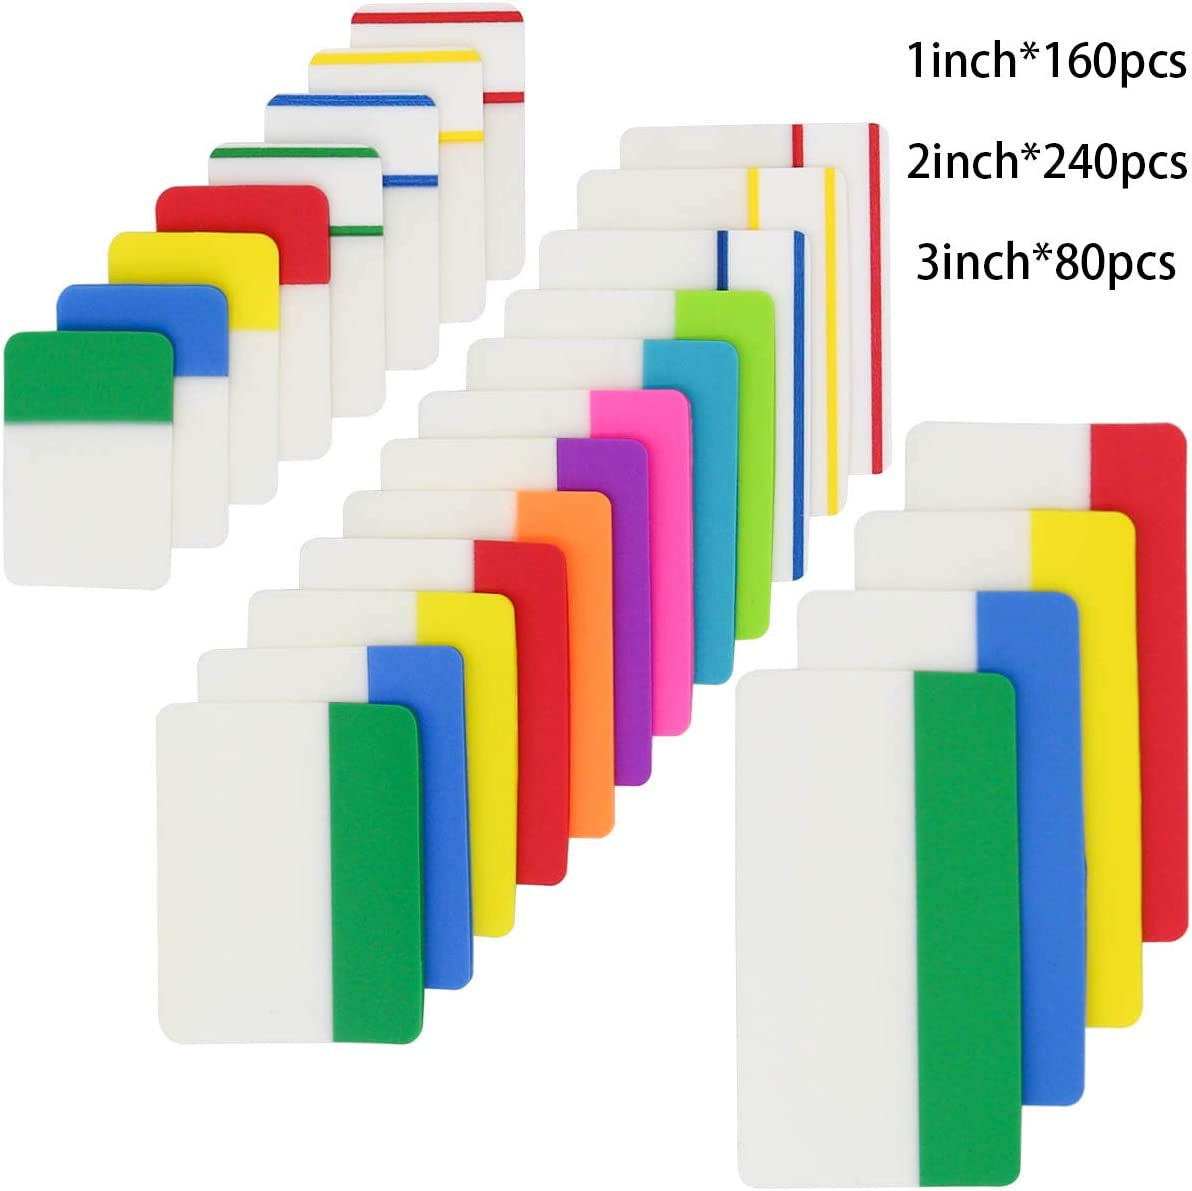 KIMCOME File Index Tabs 1,2,3 Inch Sticky Flags 480 Pieces, Colored Page Markers Self Adhesive, Writable Note Tabs for Binders, Books, Paper, Notebooks, Filing, Folders [3 Sizes, 24 Sets]